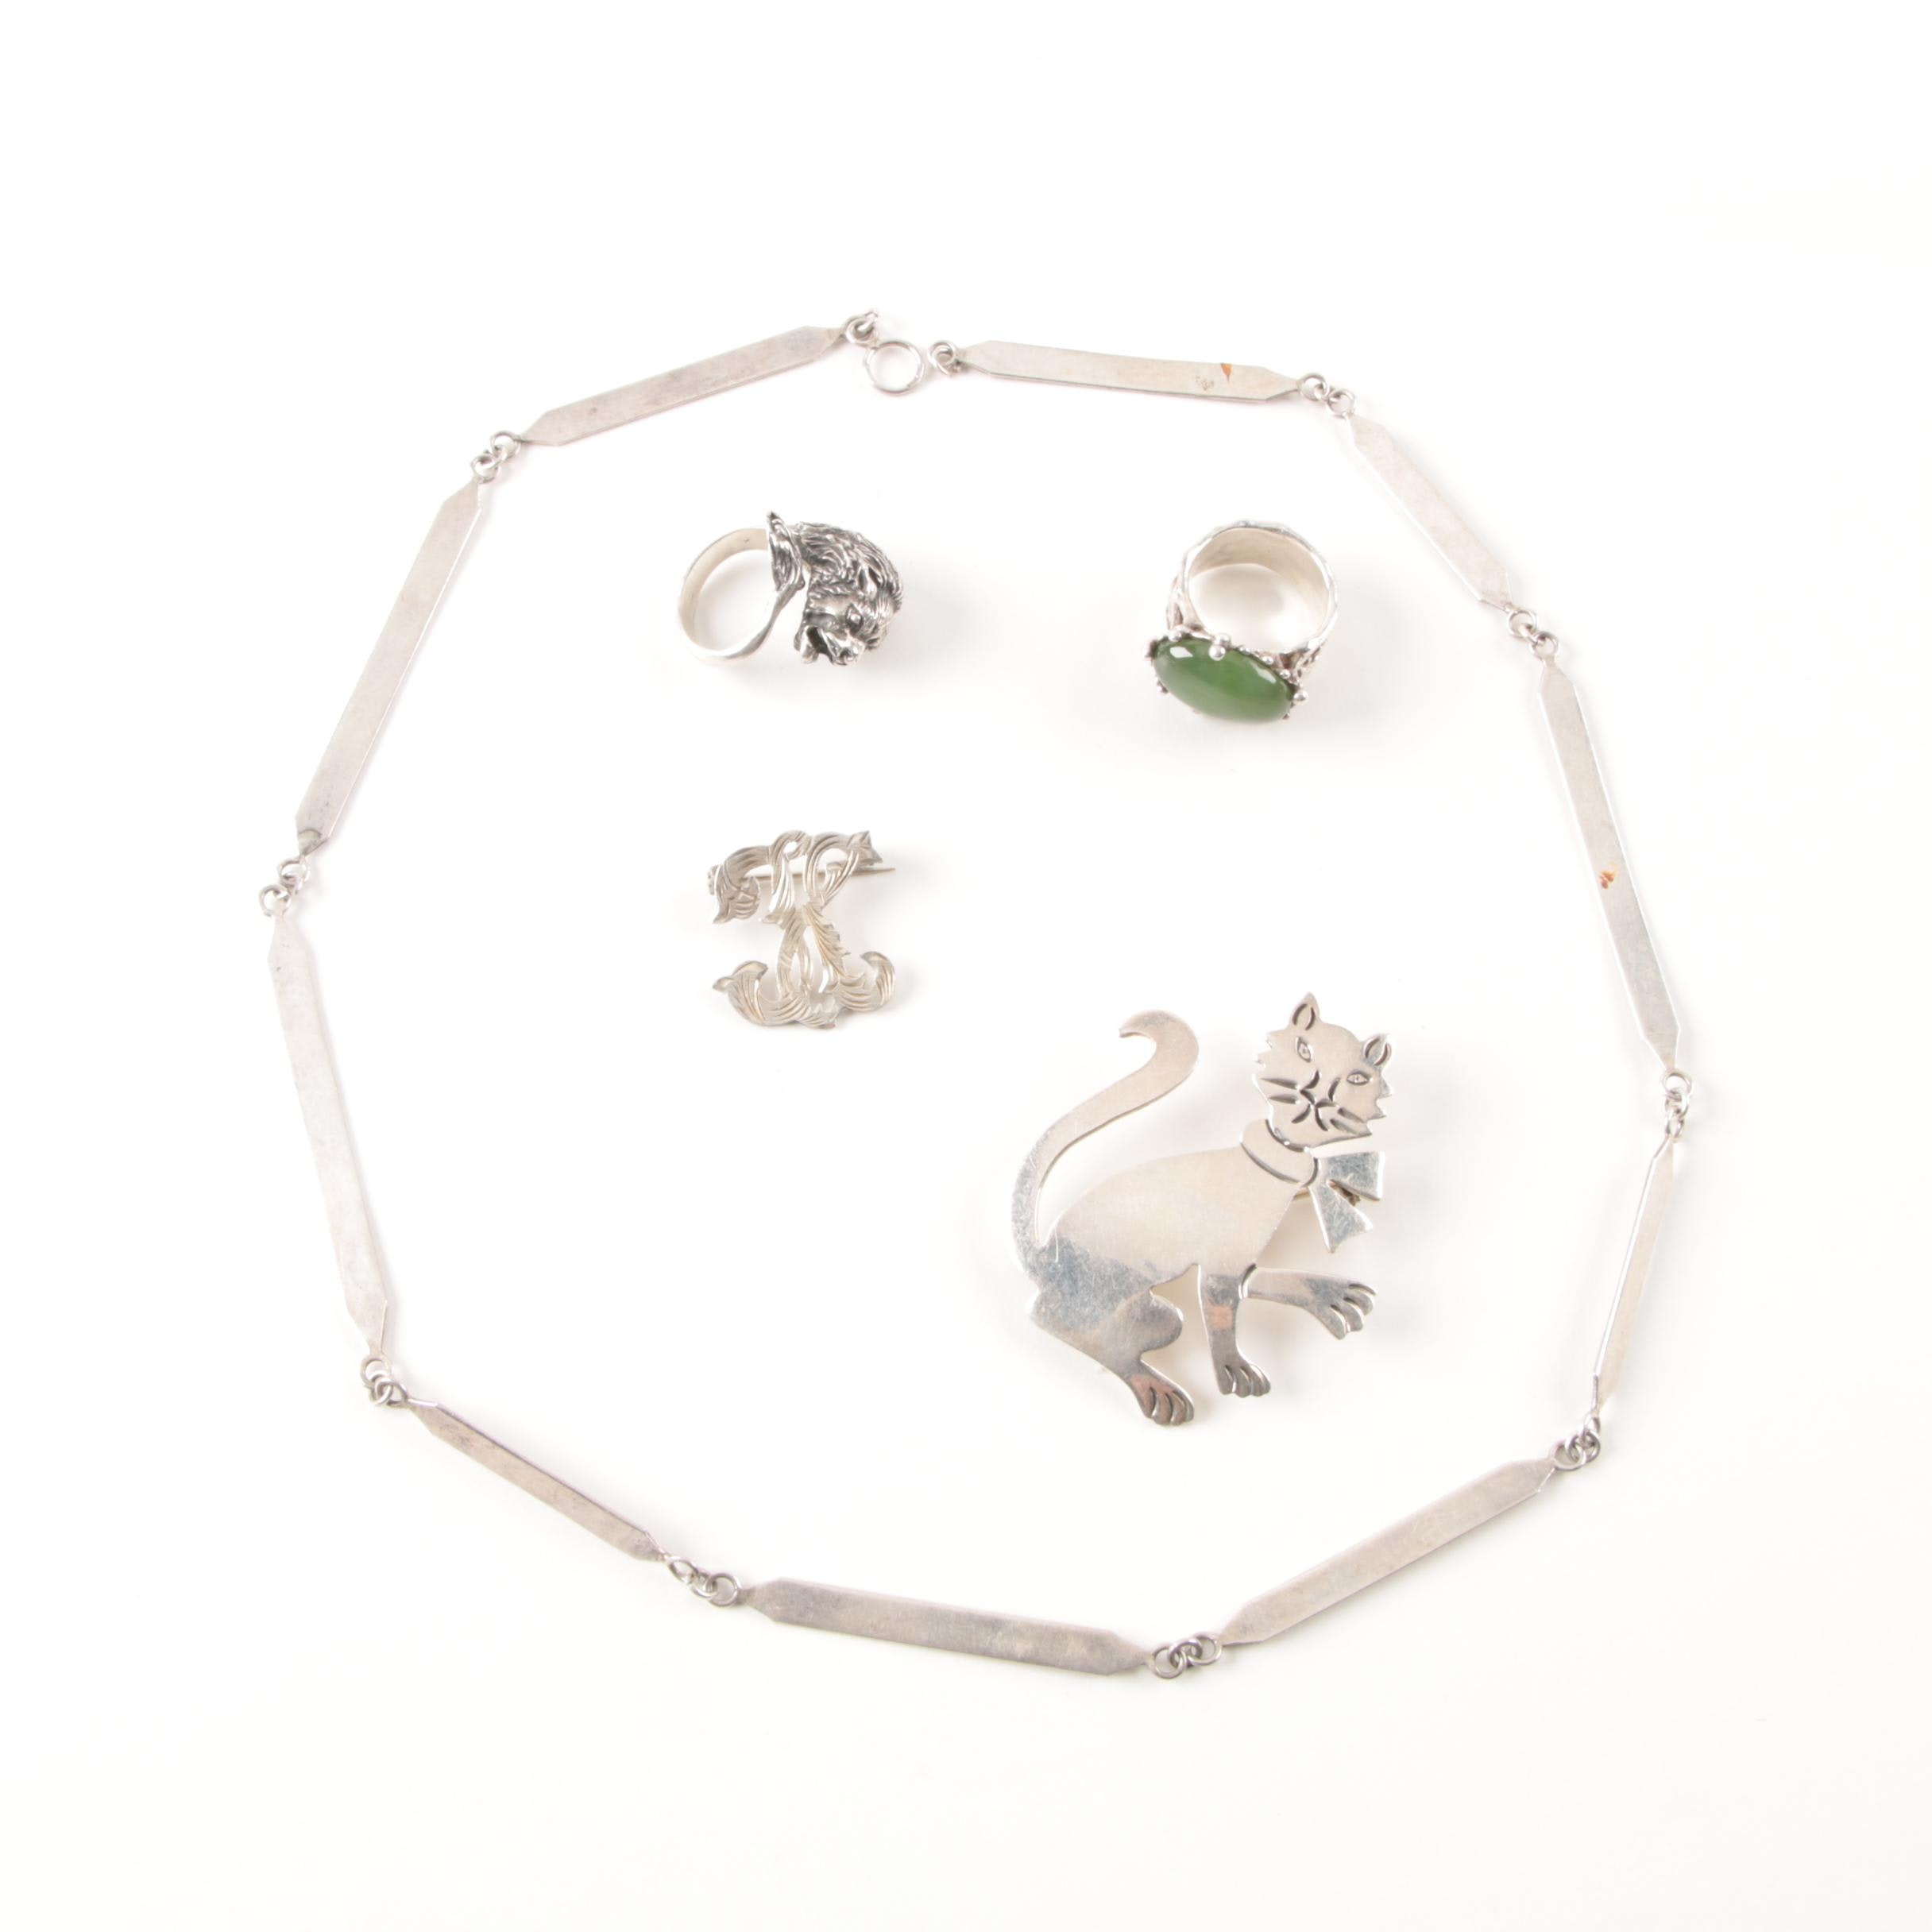 Grouping of Sterling Silver Jewelry Including a 800 Silver Lion Ring